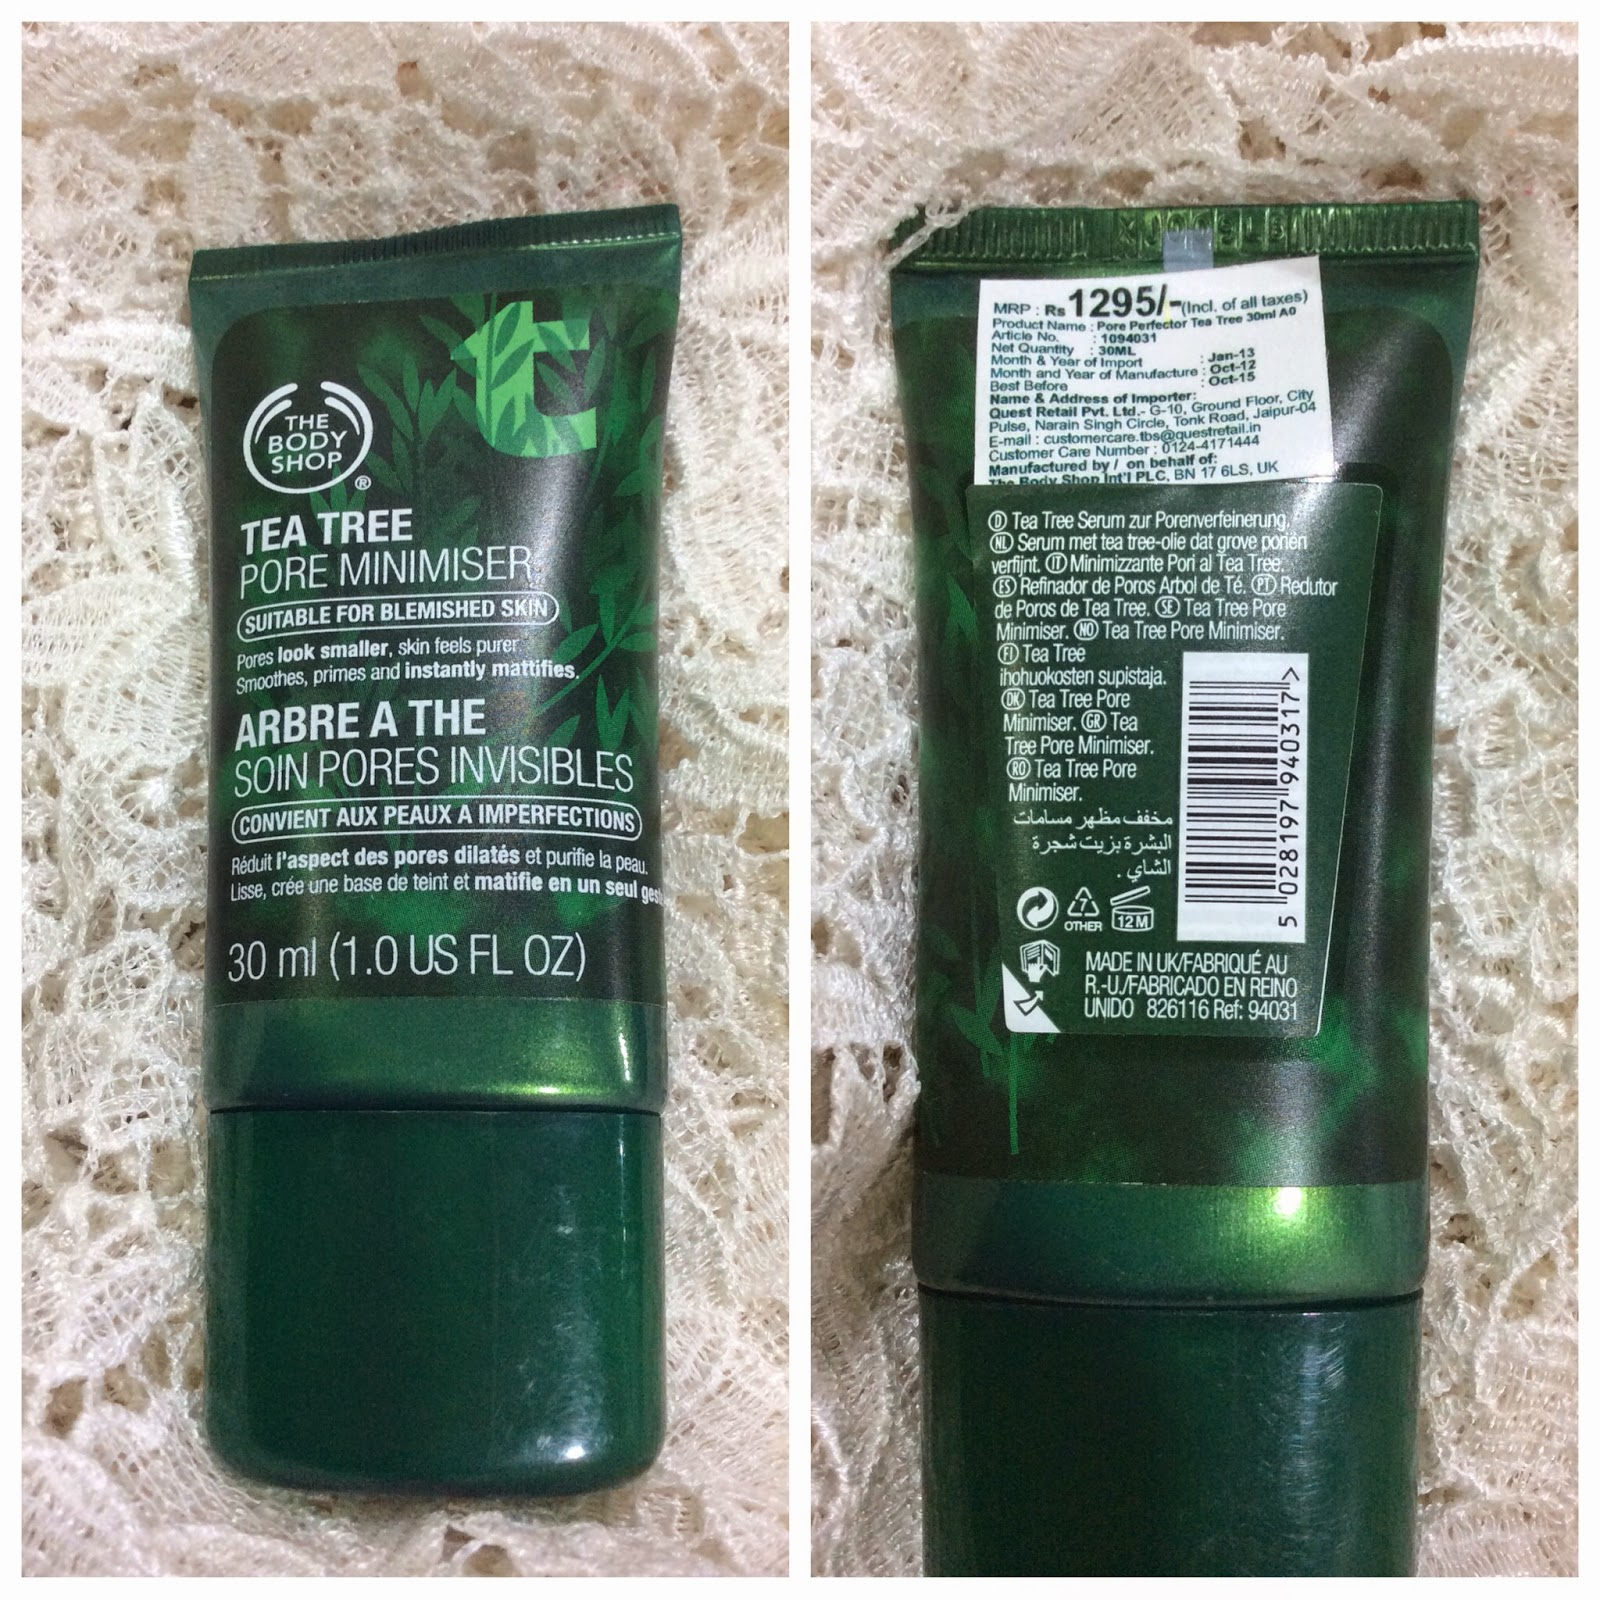 Blog Sale - The Body Shop Tea Tree Pore Minimiser